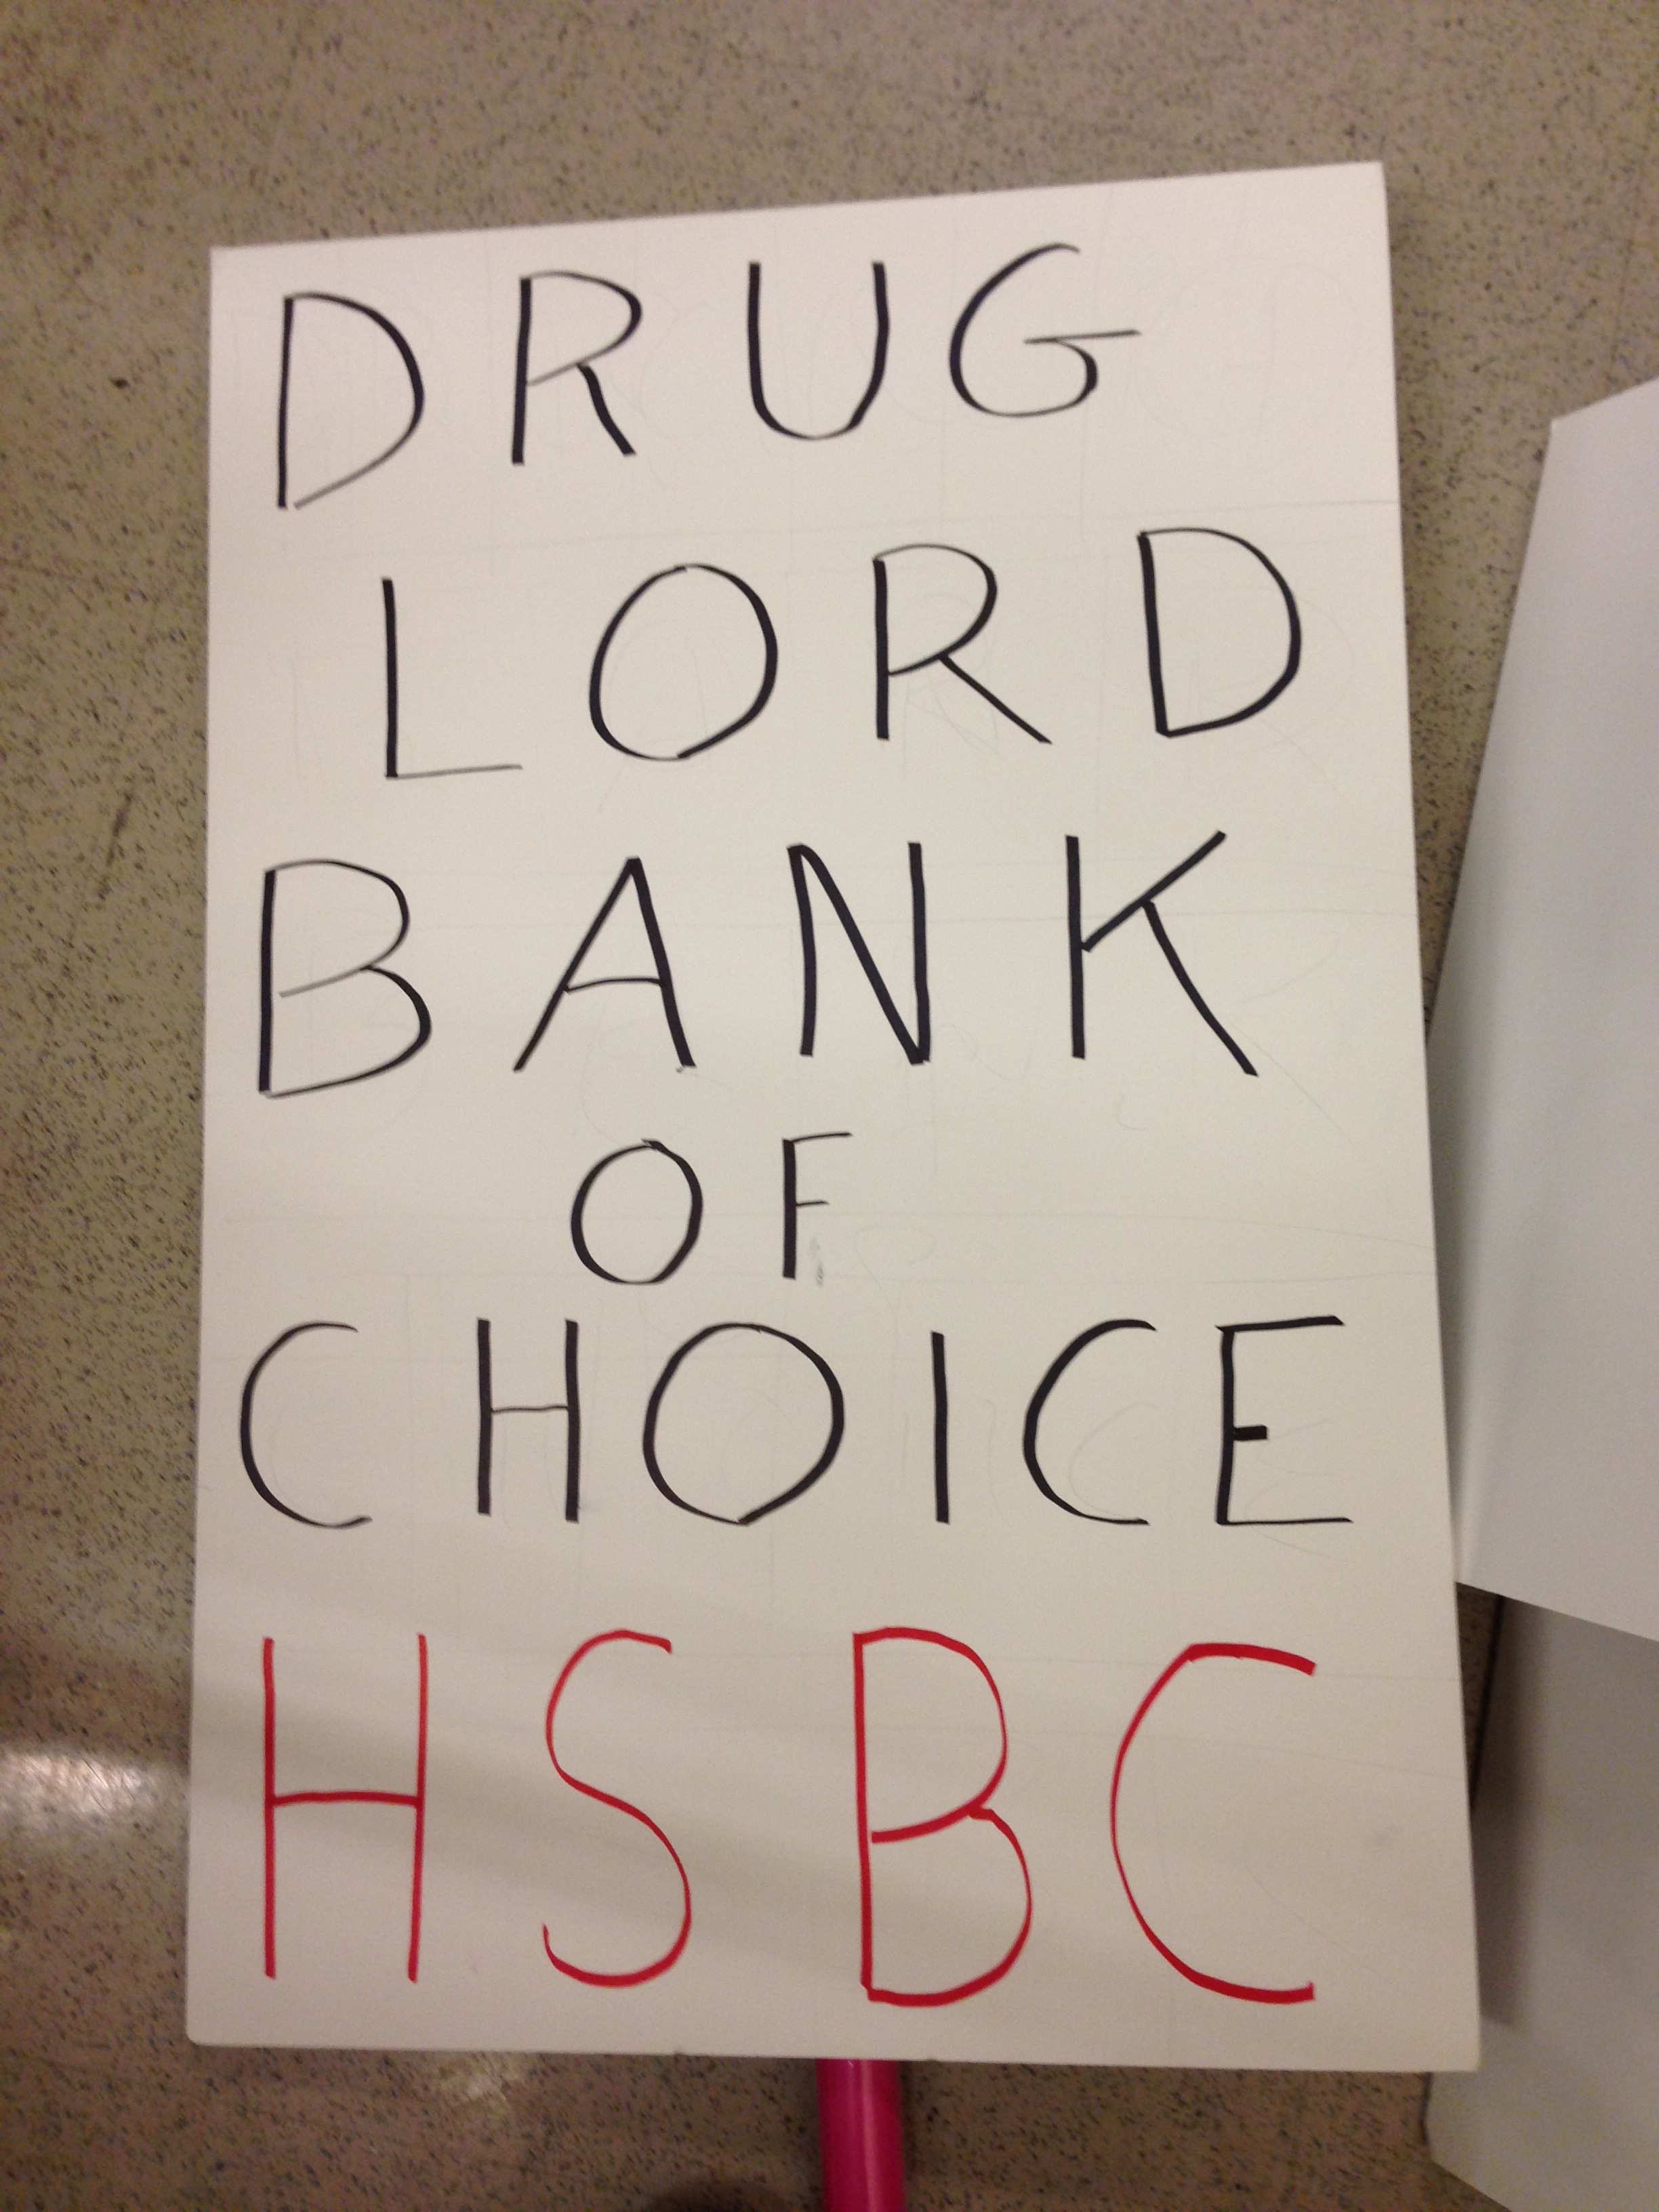 drug_lord_bank_of_choice_HSBC